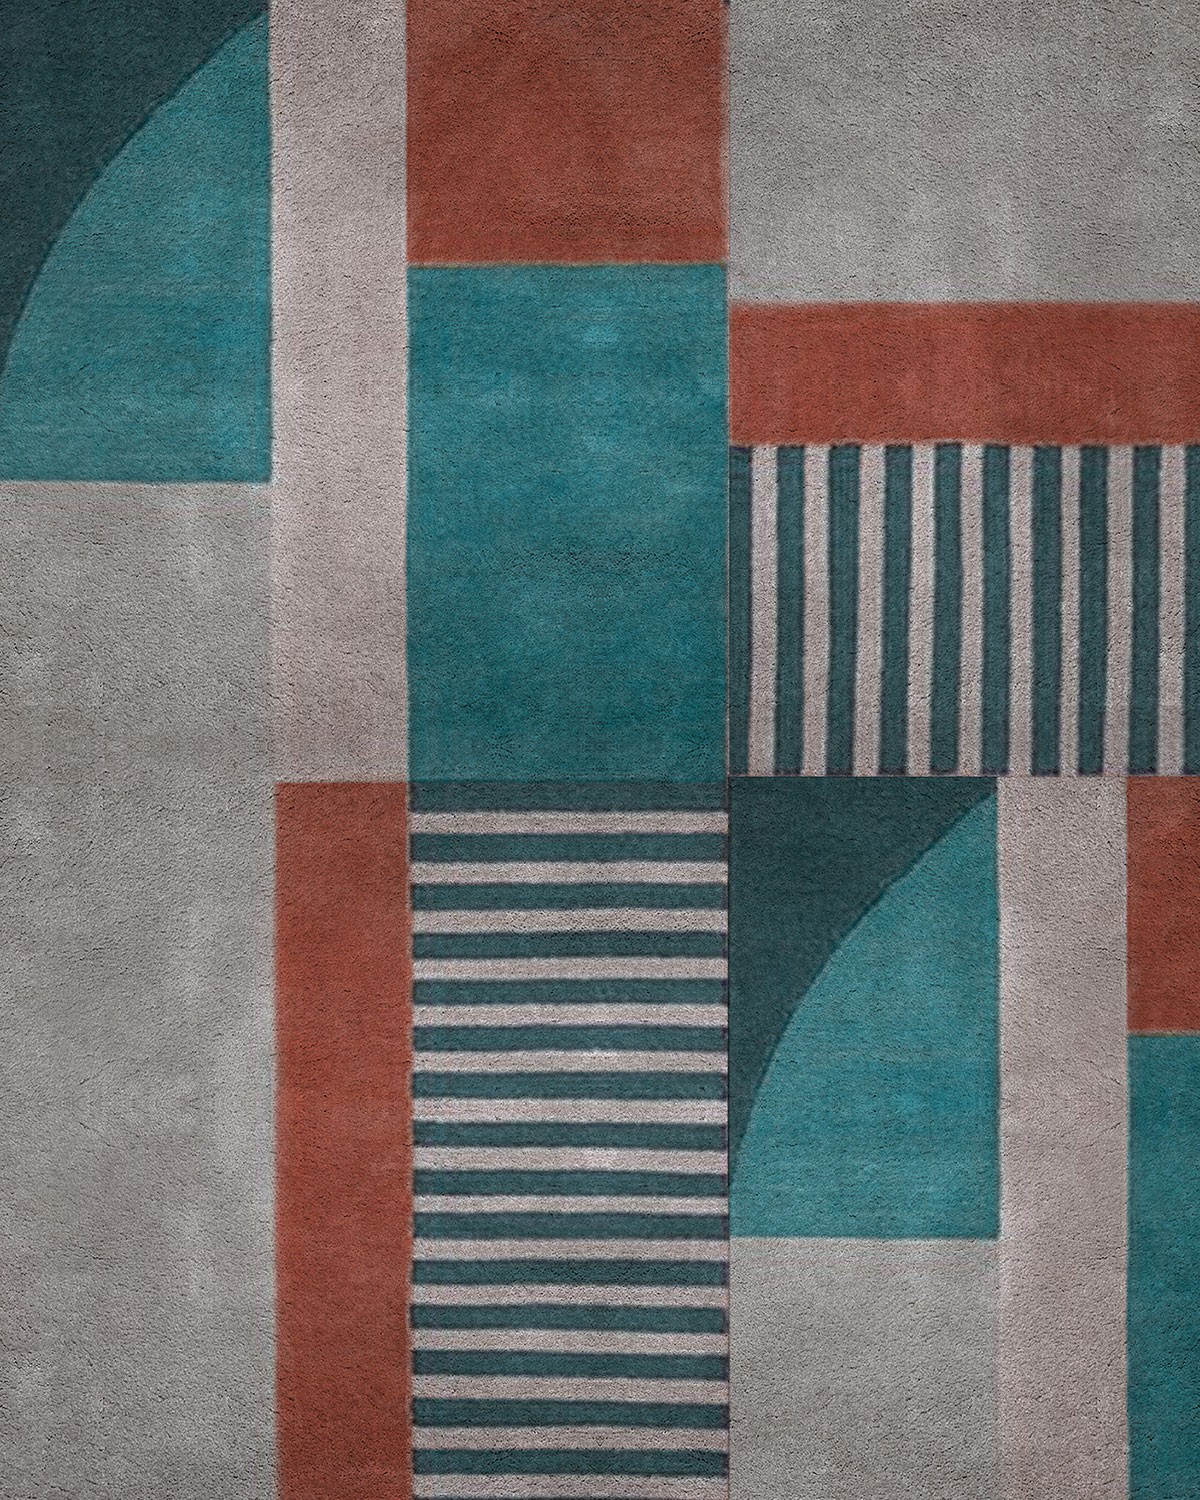 Top Dining Room Rugs You Will Fall In Love With (Part IV) dining room rugs Top Dining Room Rugs You Will Fall In Love With (Part IV) prisma two 1